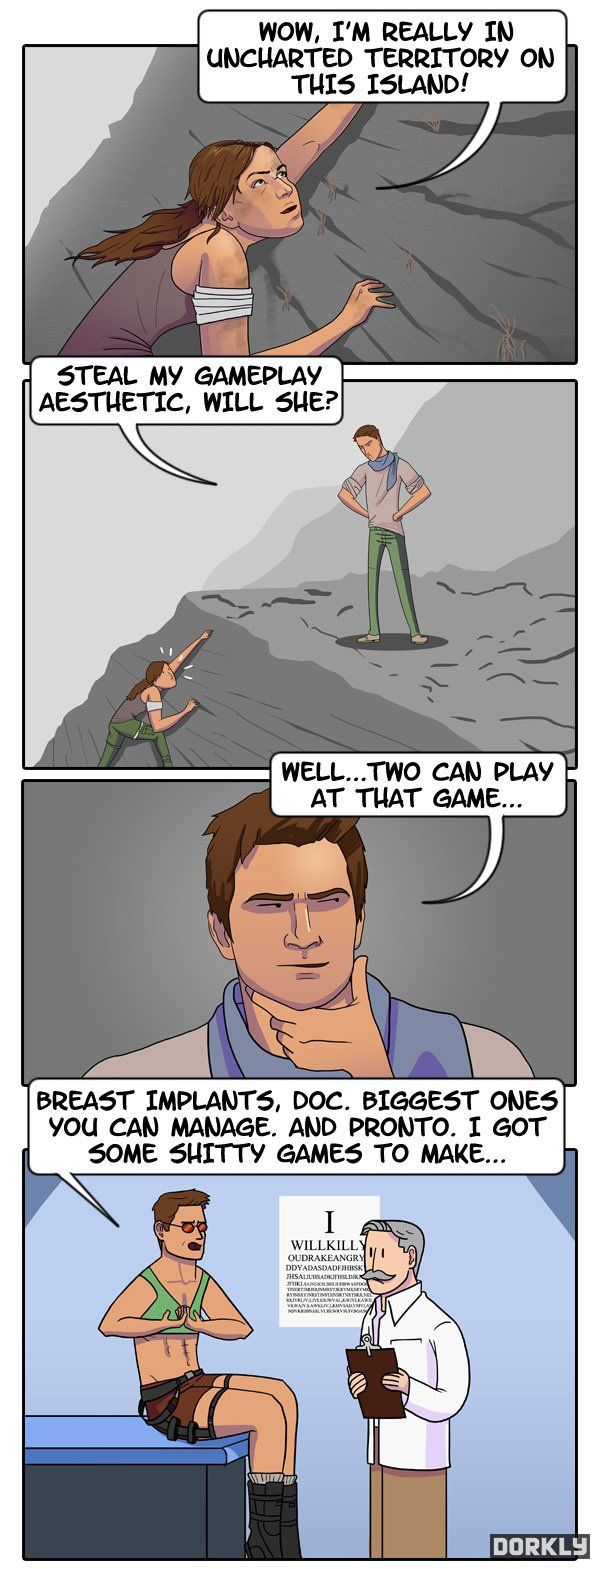 Tomb Raider: Drakes Revenge. Shouldn't have made me laugh like it did.